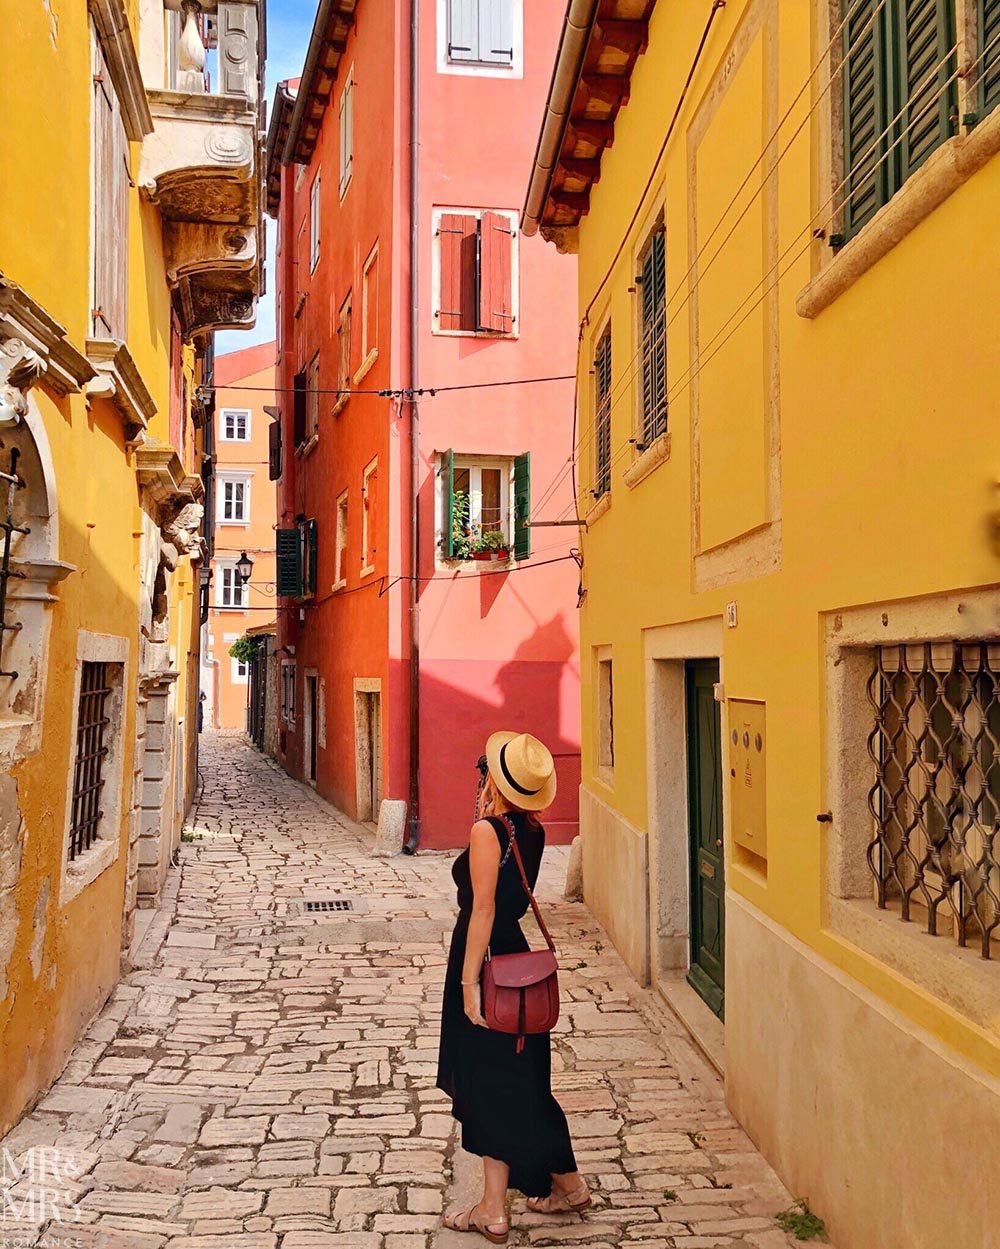 The narrow, cobbled streets of Istria, Croatia